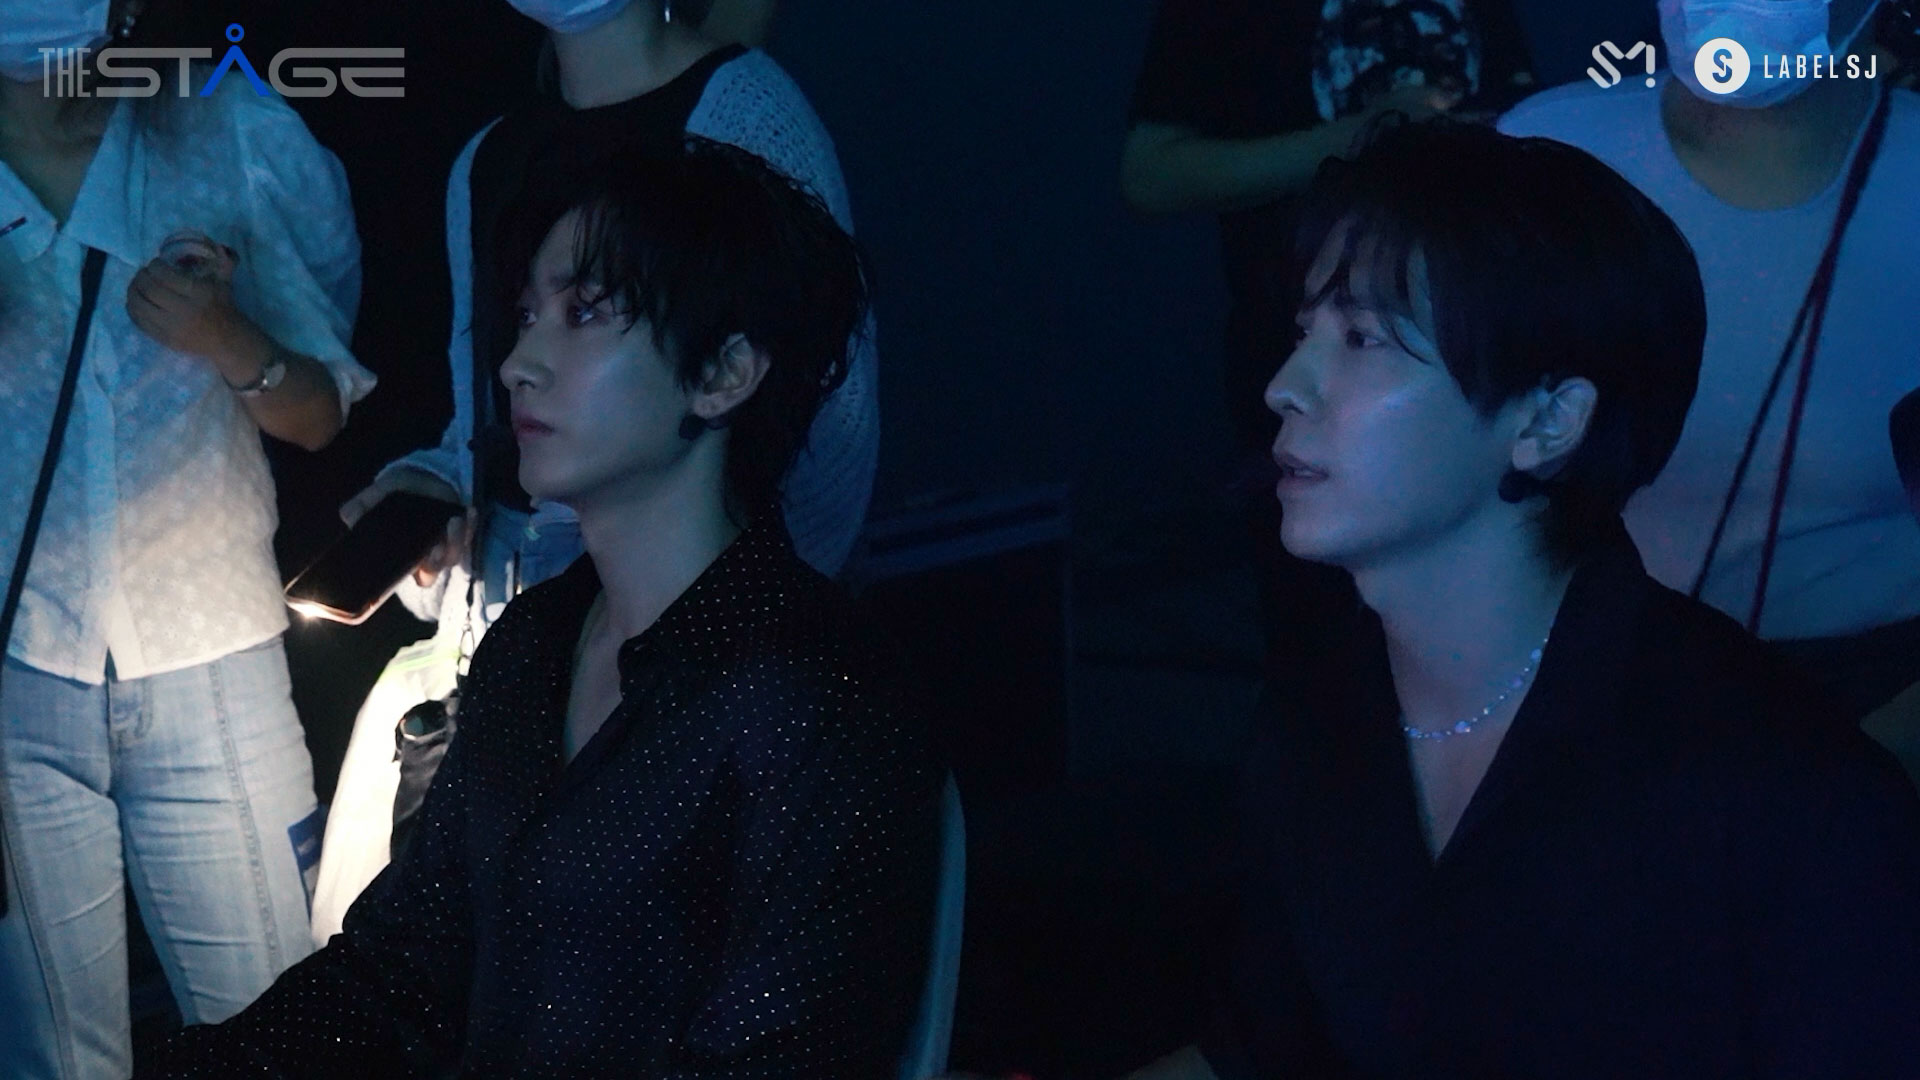 SUPER JUNIOR-D&E THE STAGE Behind The Scenes l BAD LIAR